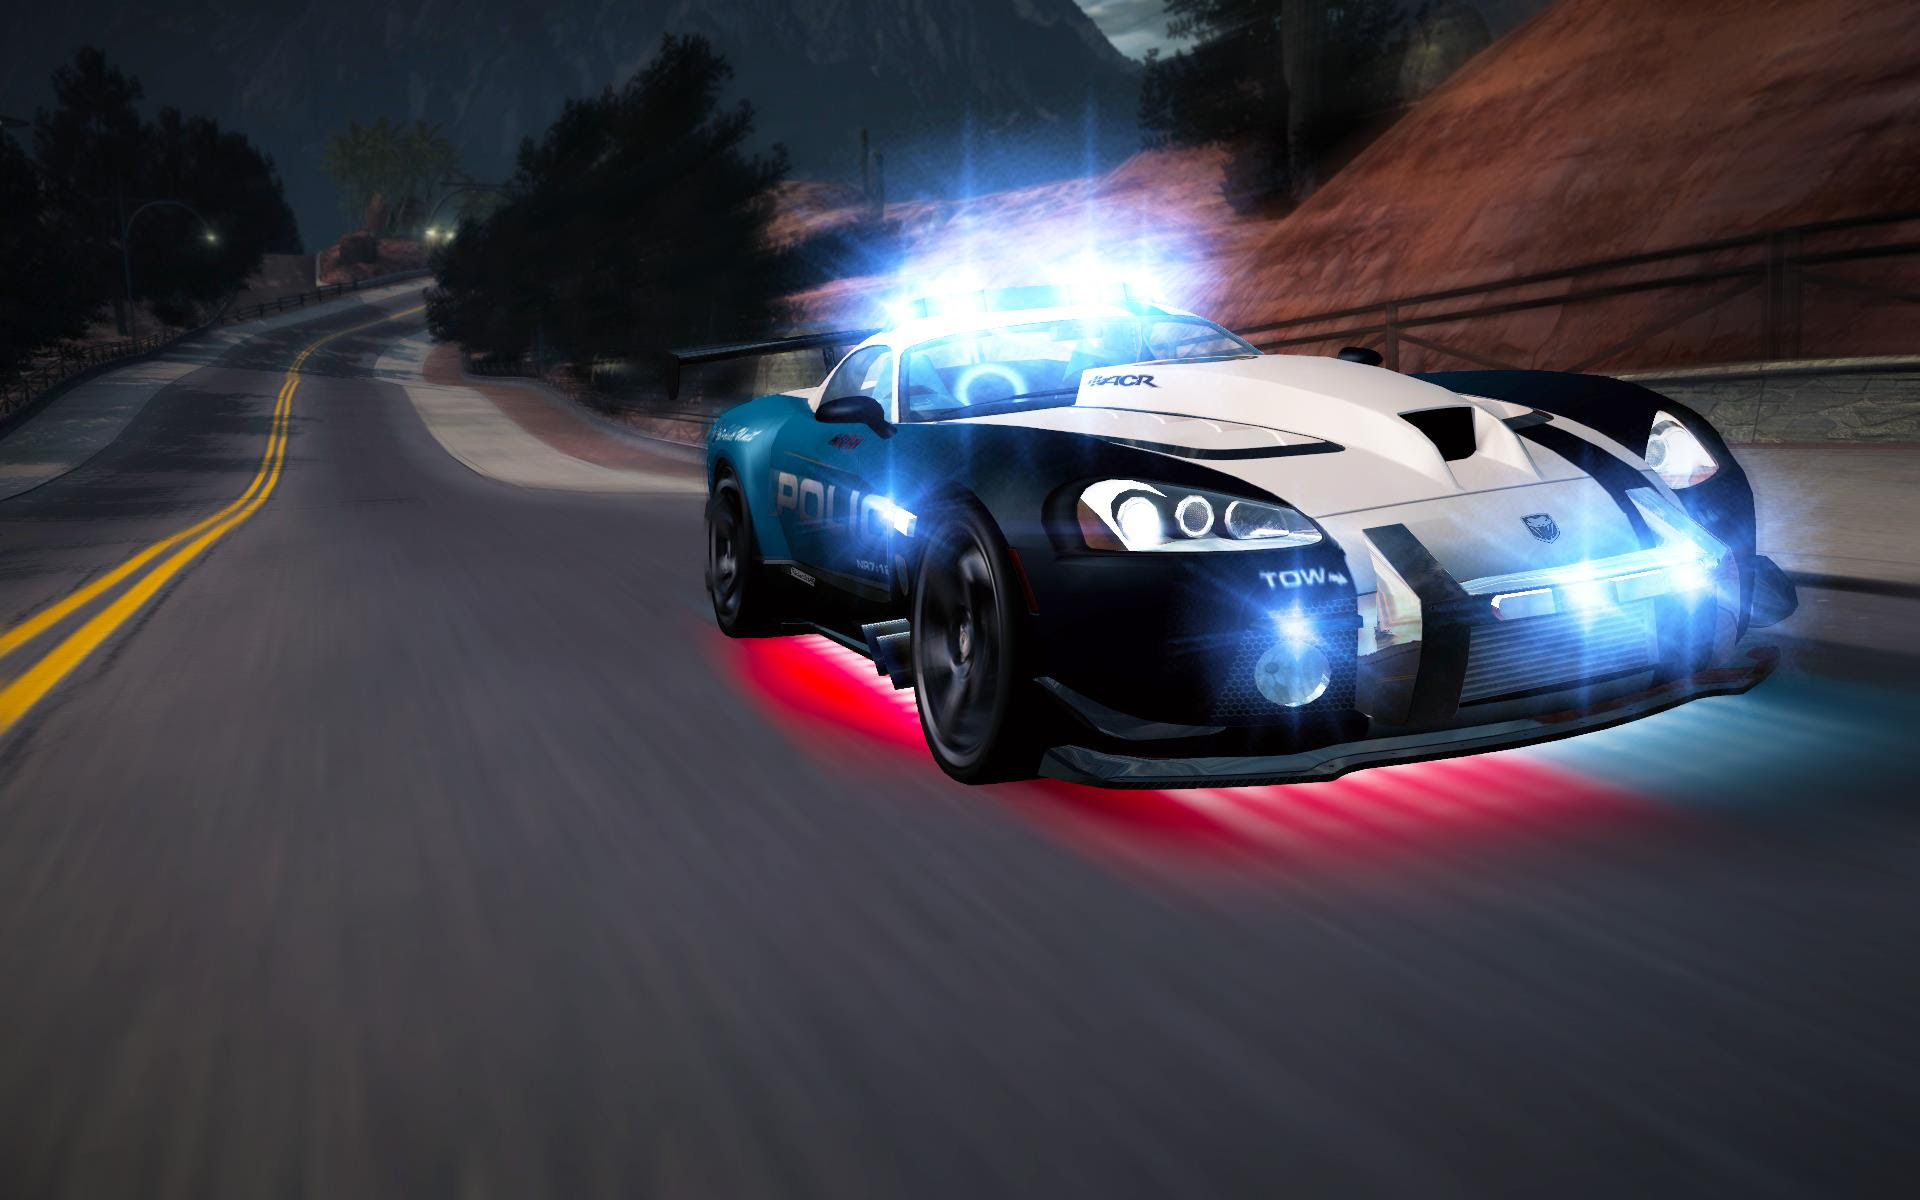 Dodge Viper Srt 10 Acr Nfs World Wiki Fandom Powered By Wikia